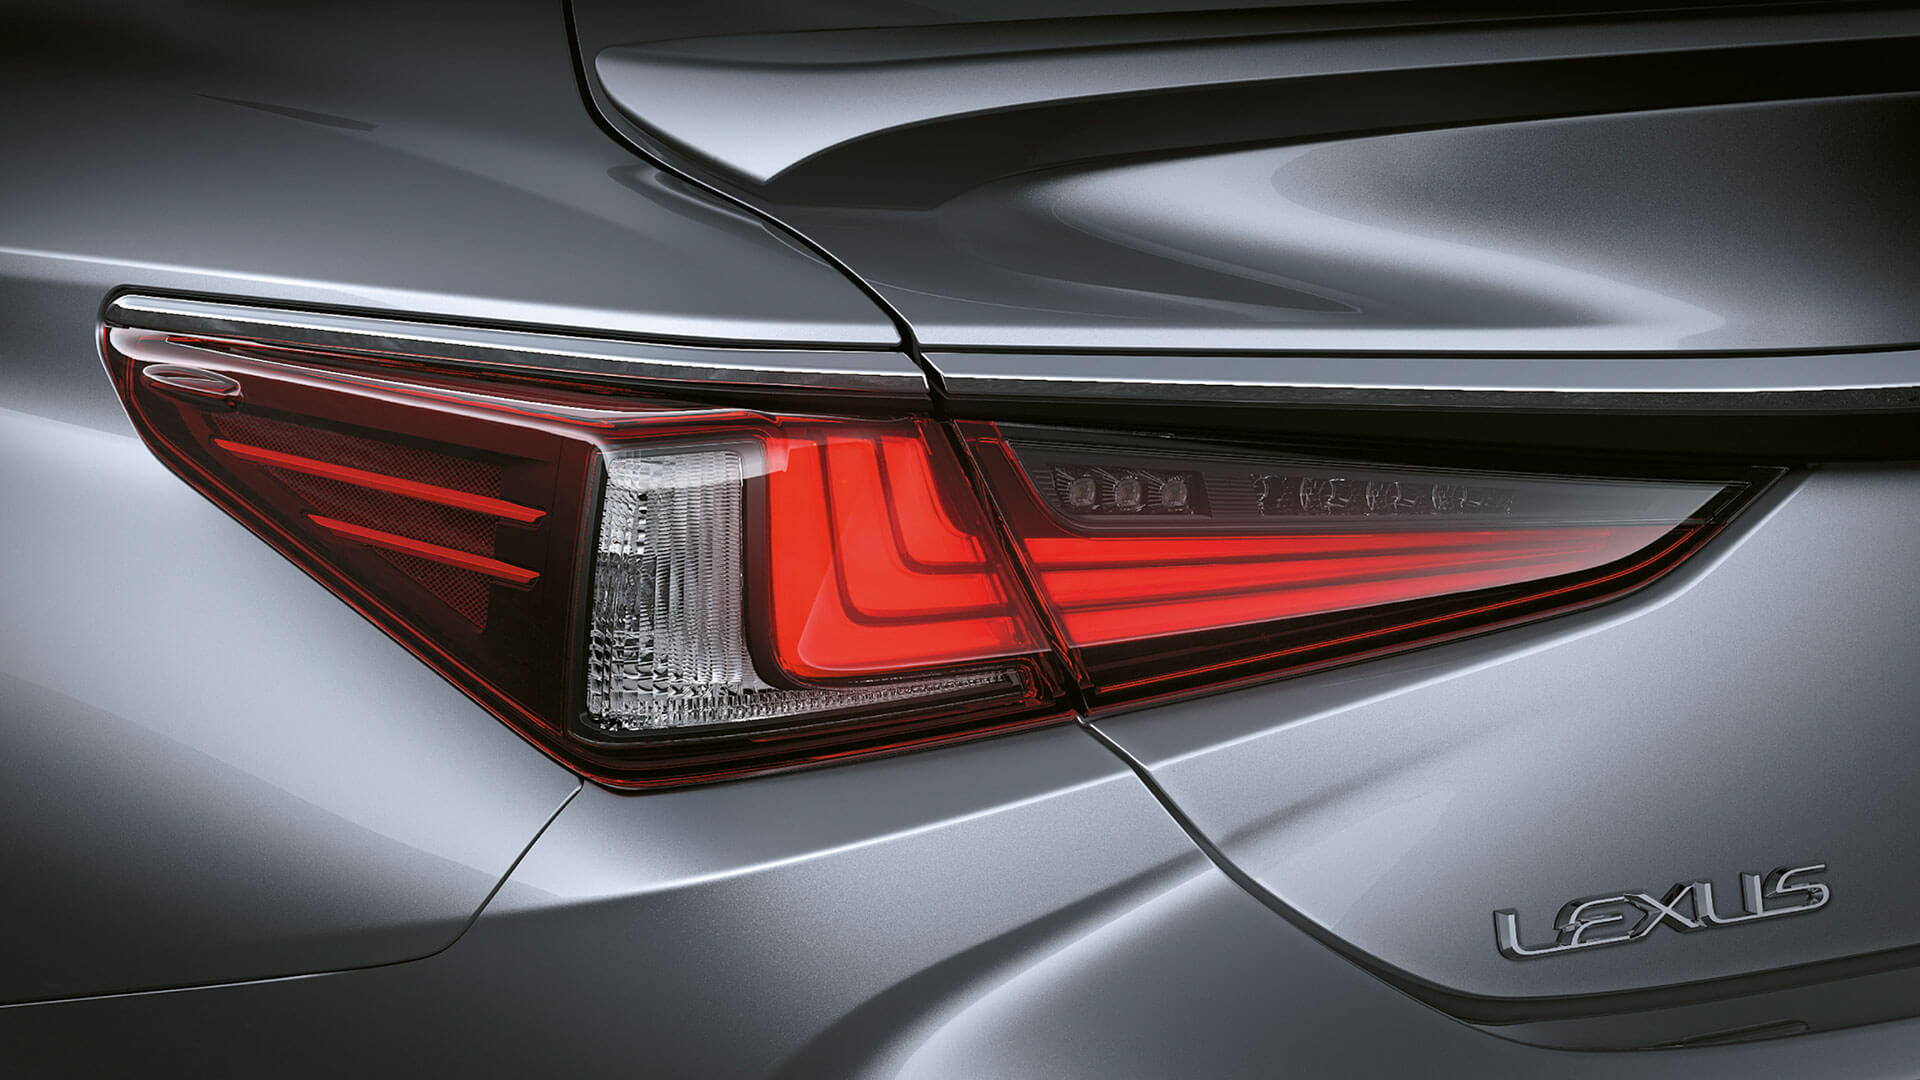 2019 lexus es 250 experience feature rear led lights